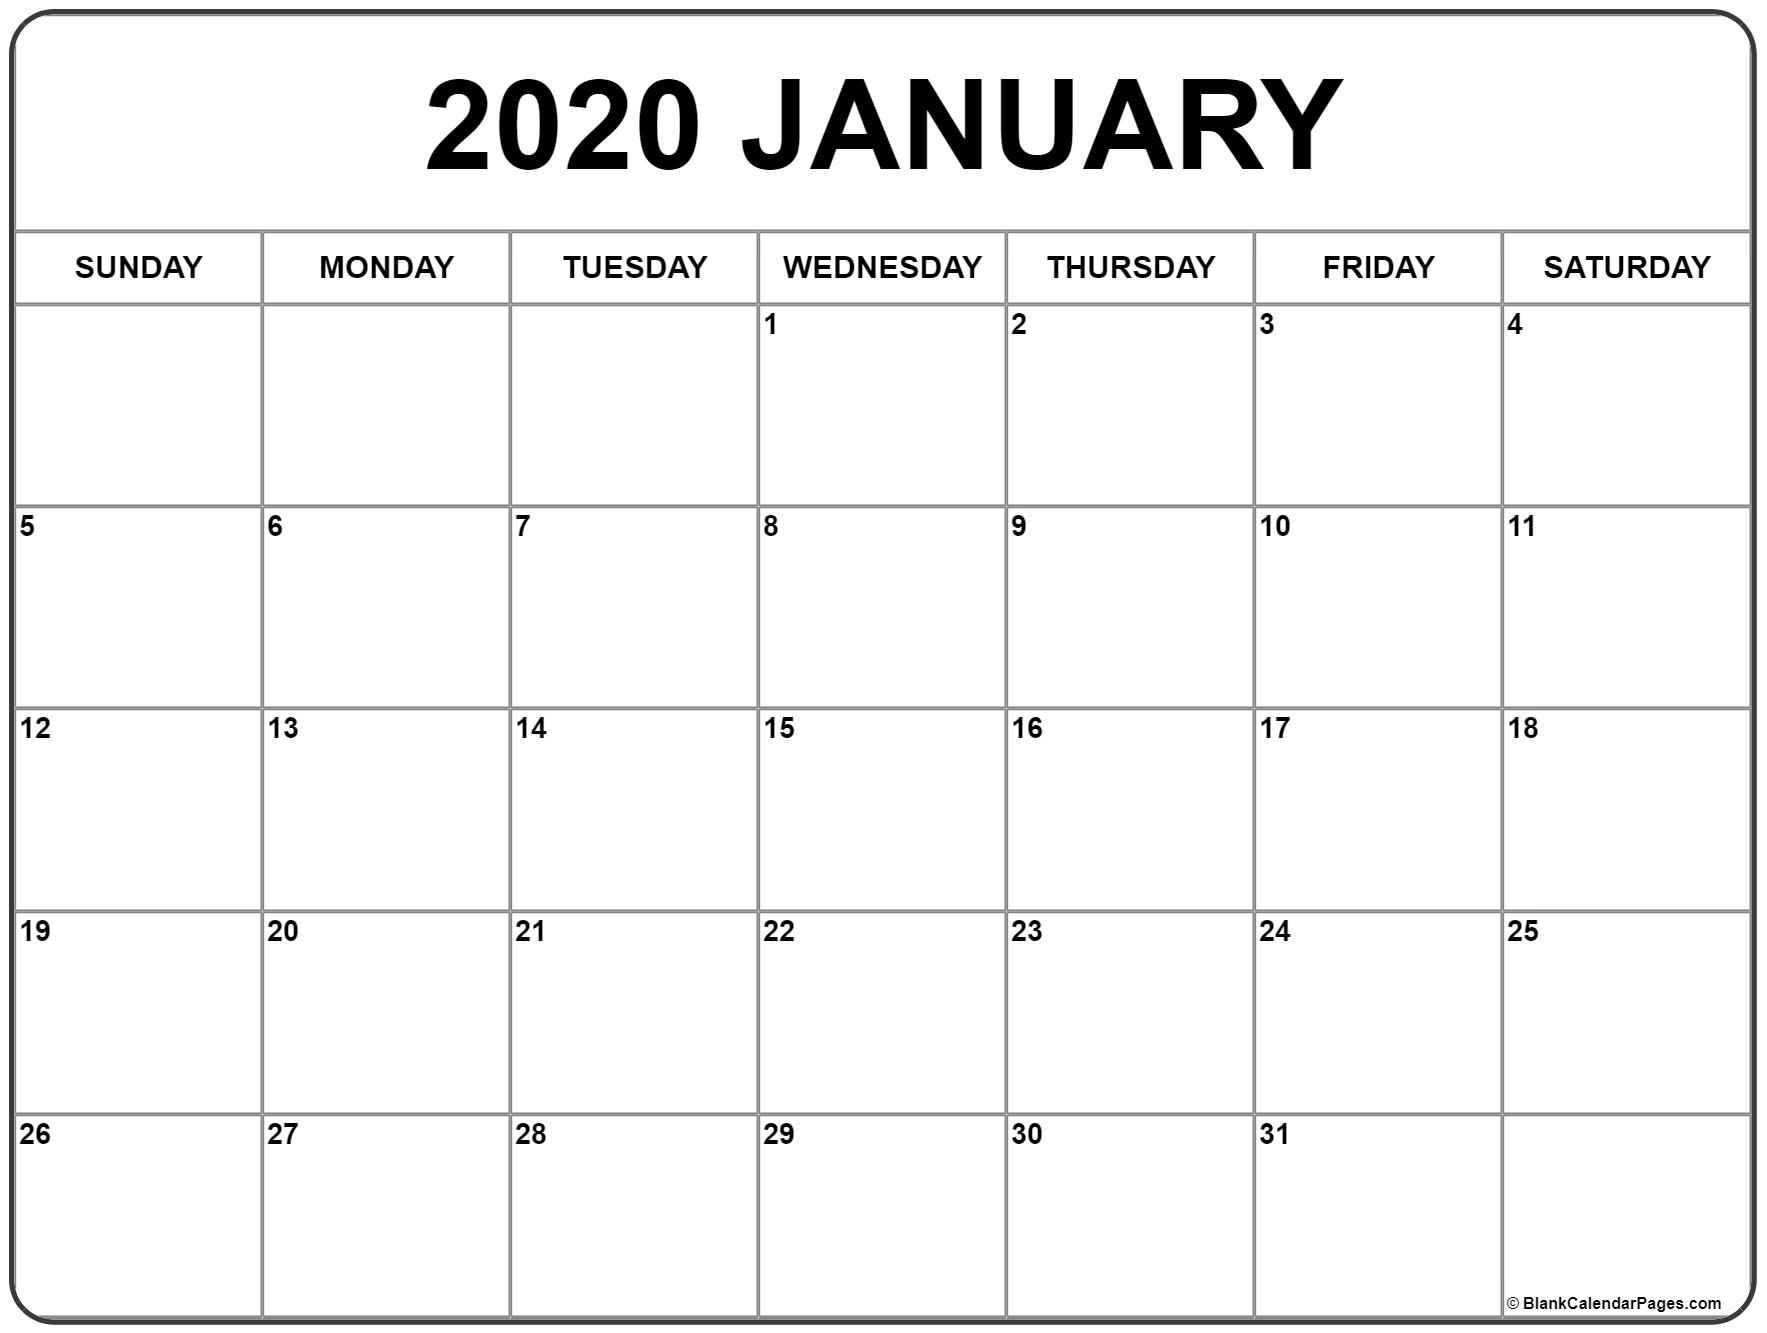 January 2020 Calendar | Free Printable Monthly Calendars pertaining to 2020 Free Printable Calendar Large Numbers